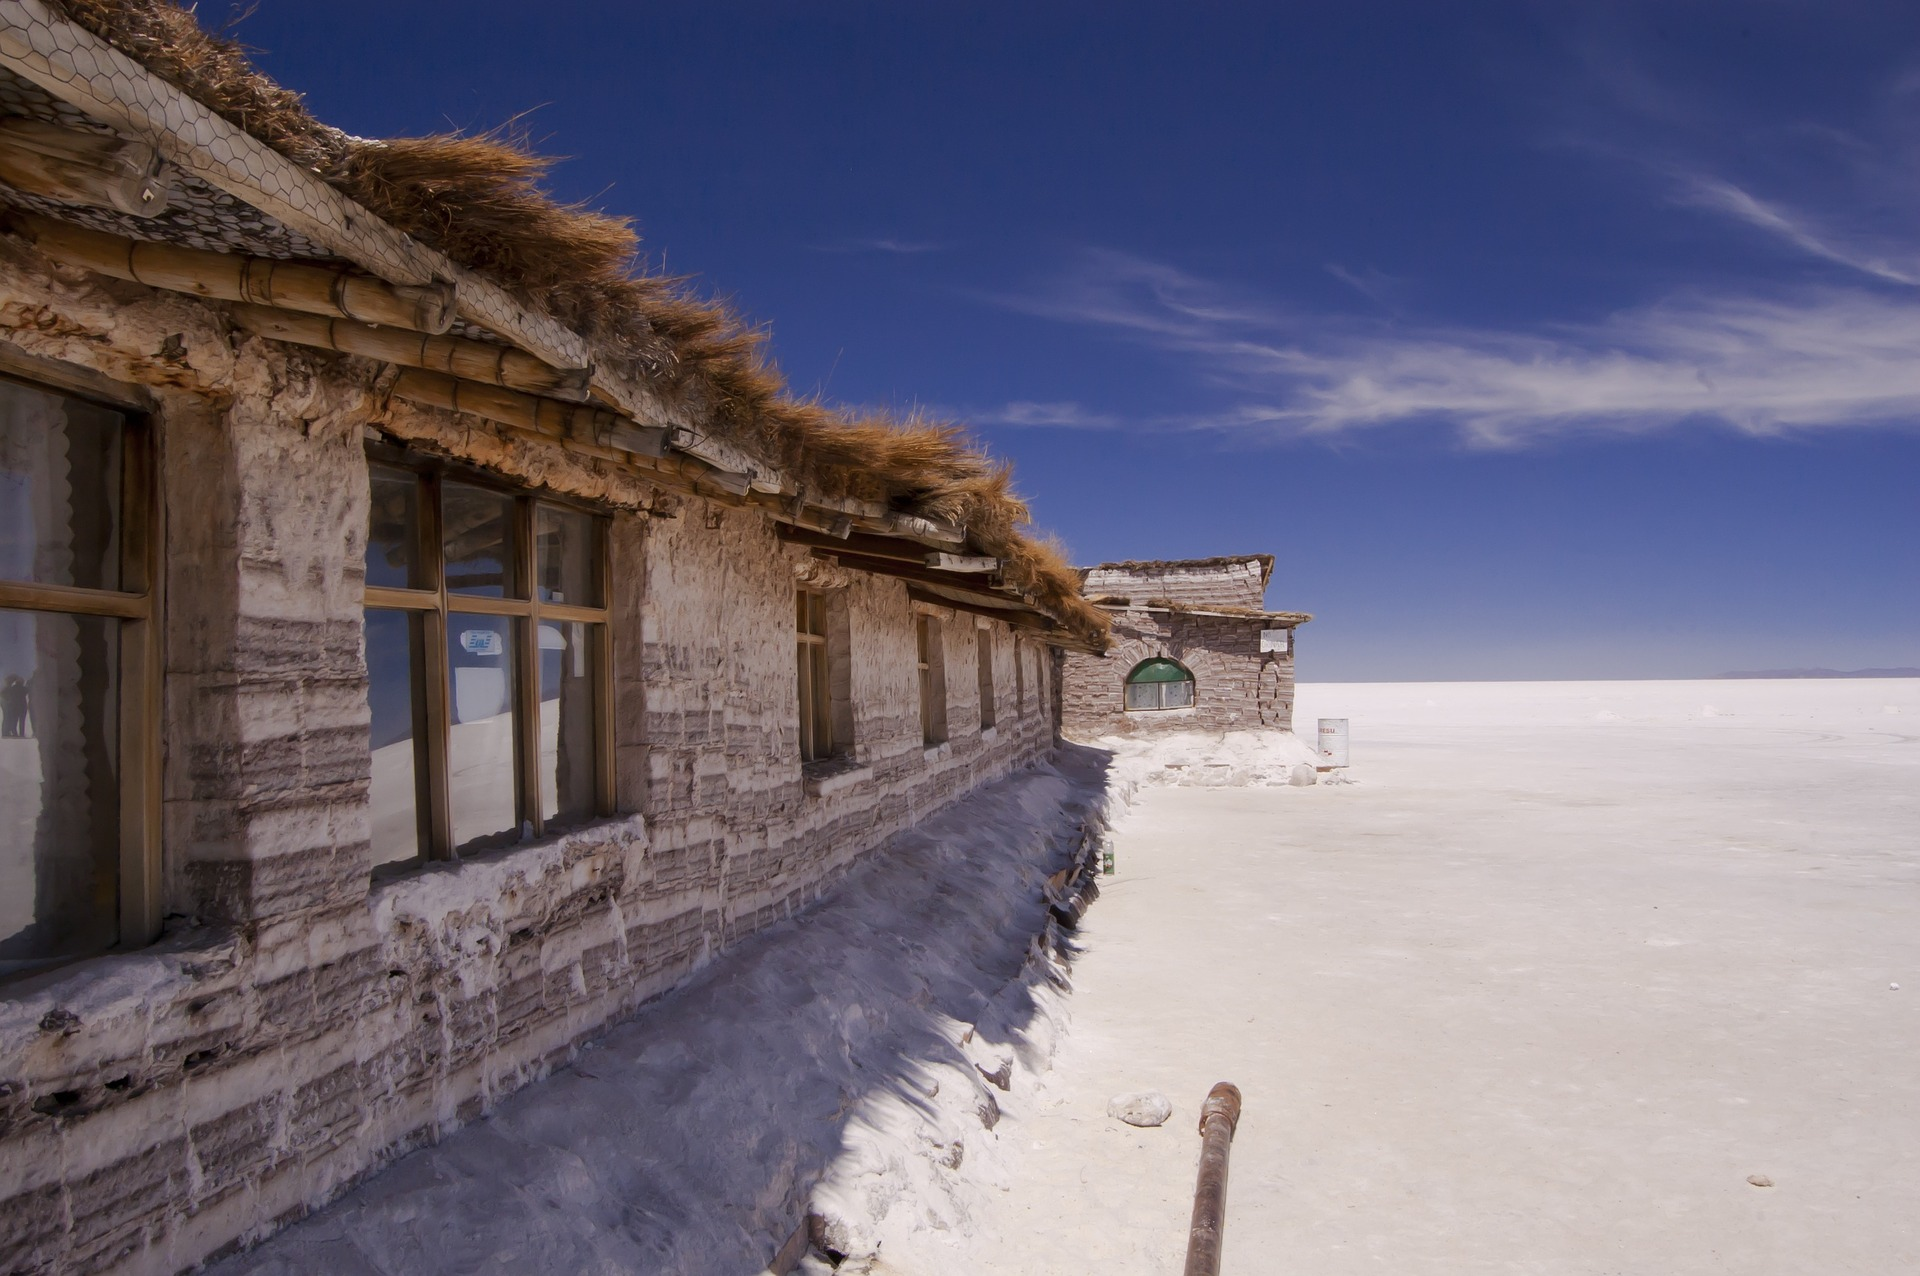 Where to stay in Uyuni, Bolivia?